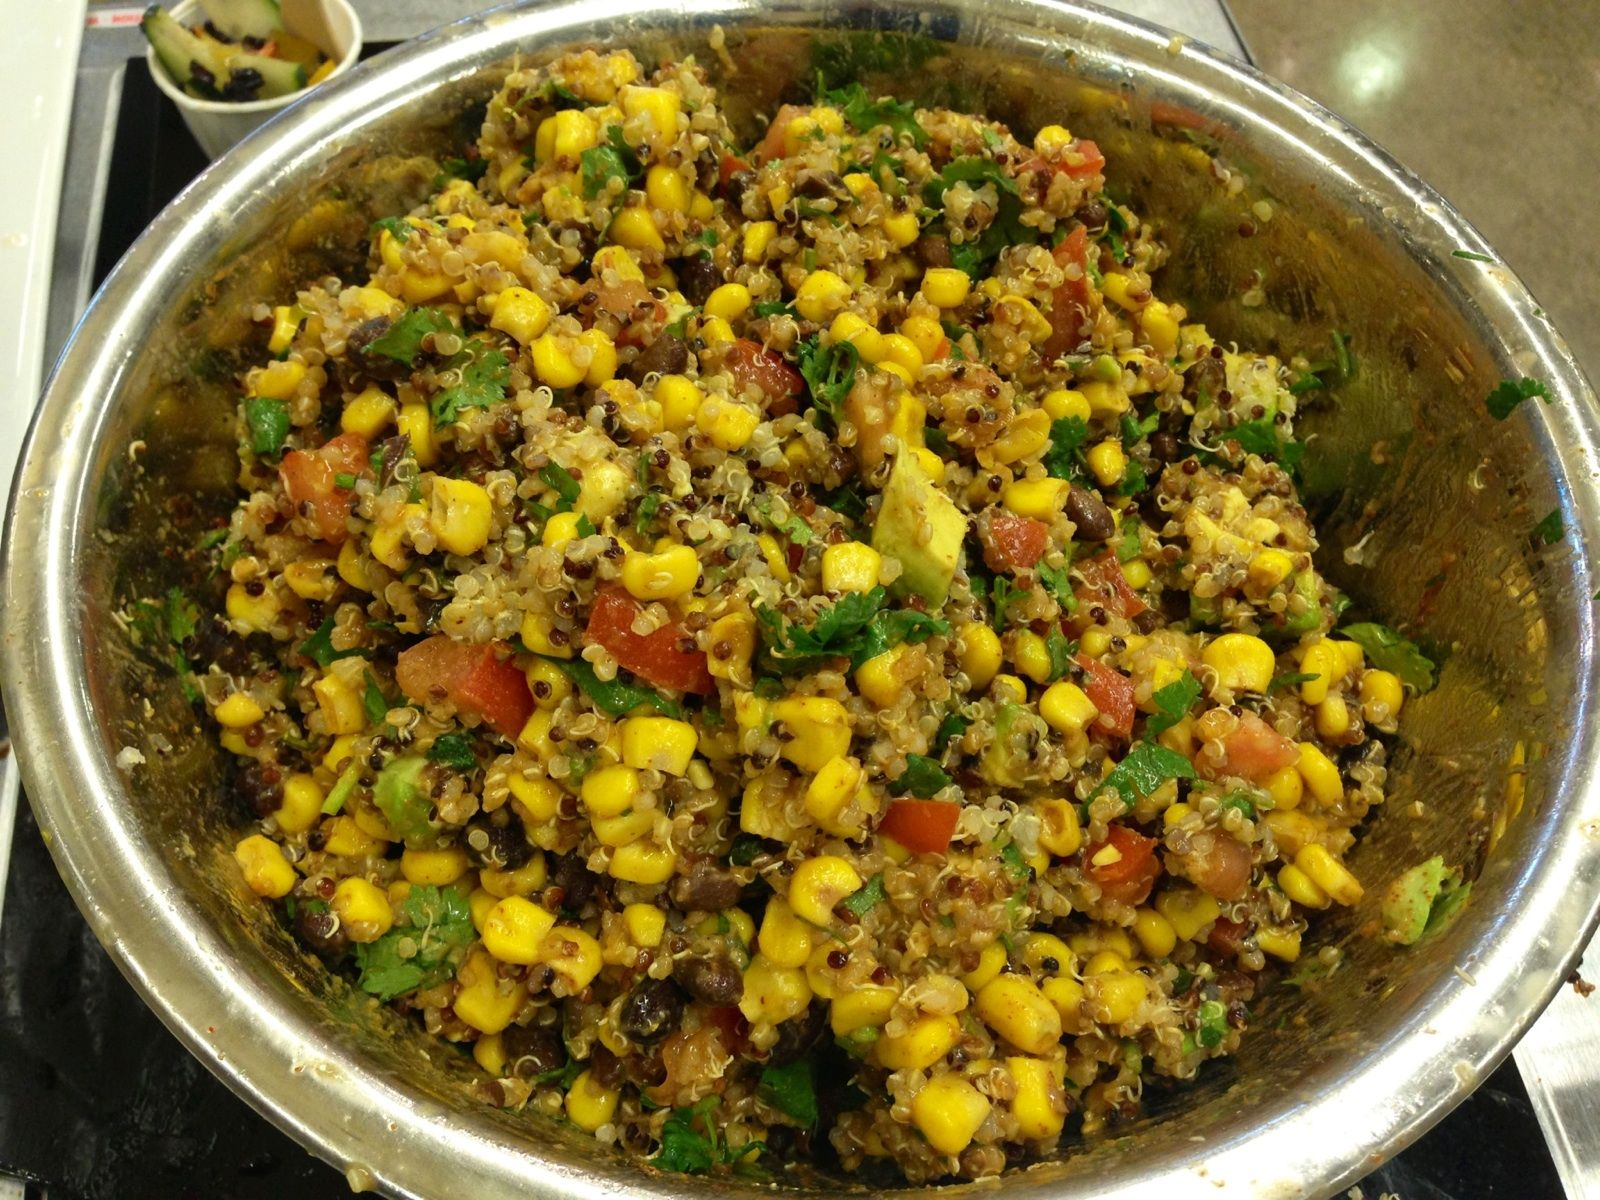 Tex mex quinoa salad recipes whole foods market cooking tex mex quinoa salad recipes whole foods market cooking fairfield forumfinder Images